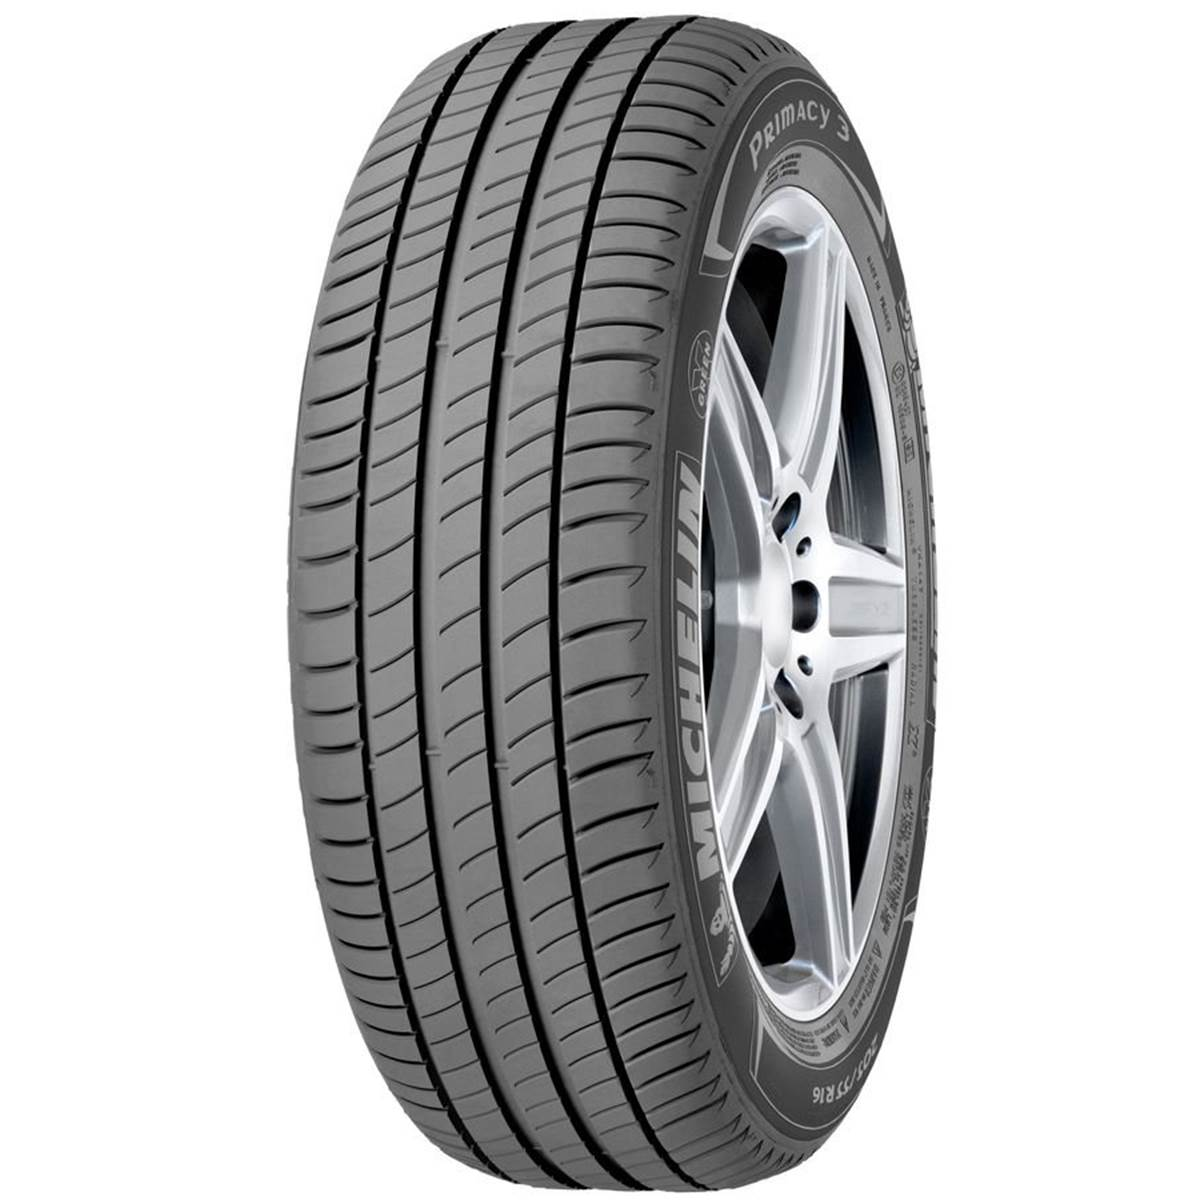 Pneu Michelin 205/50R17 93W Primacy 3